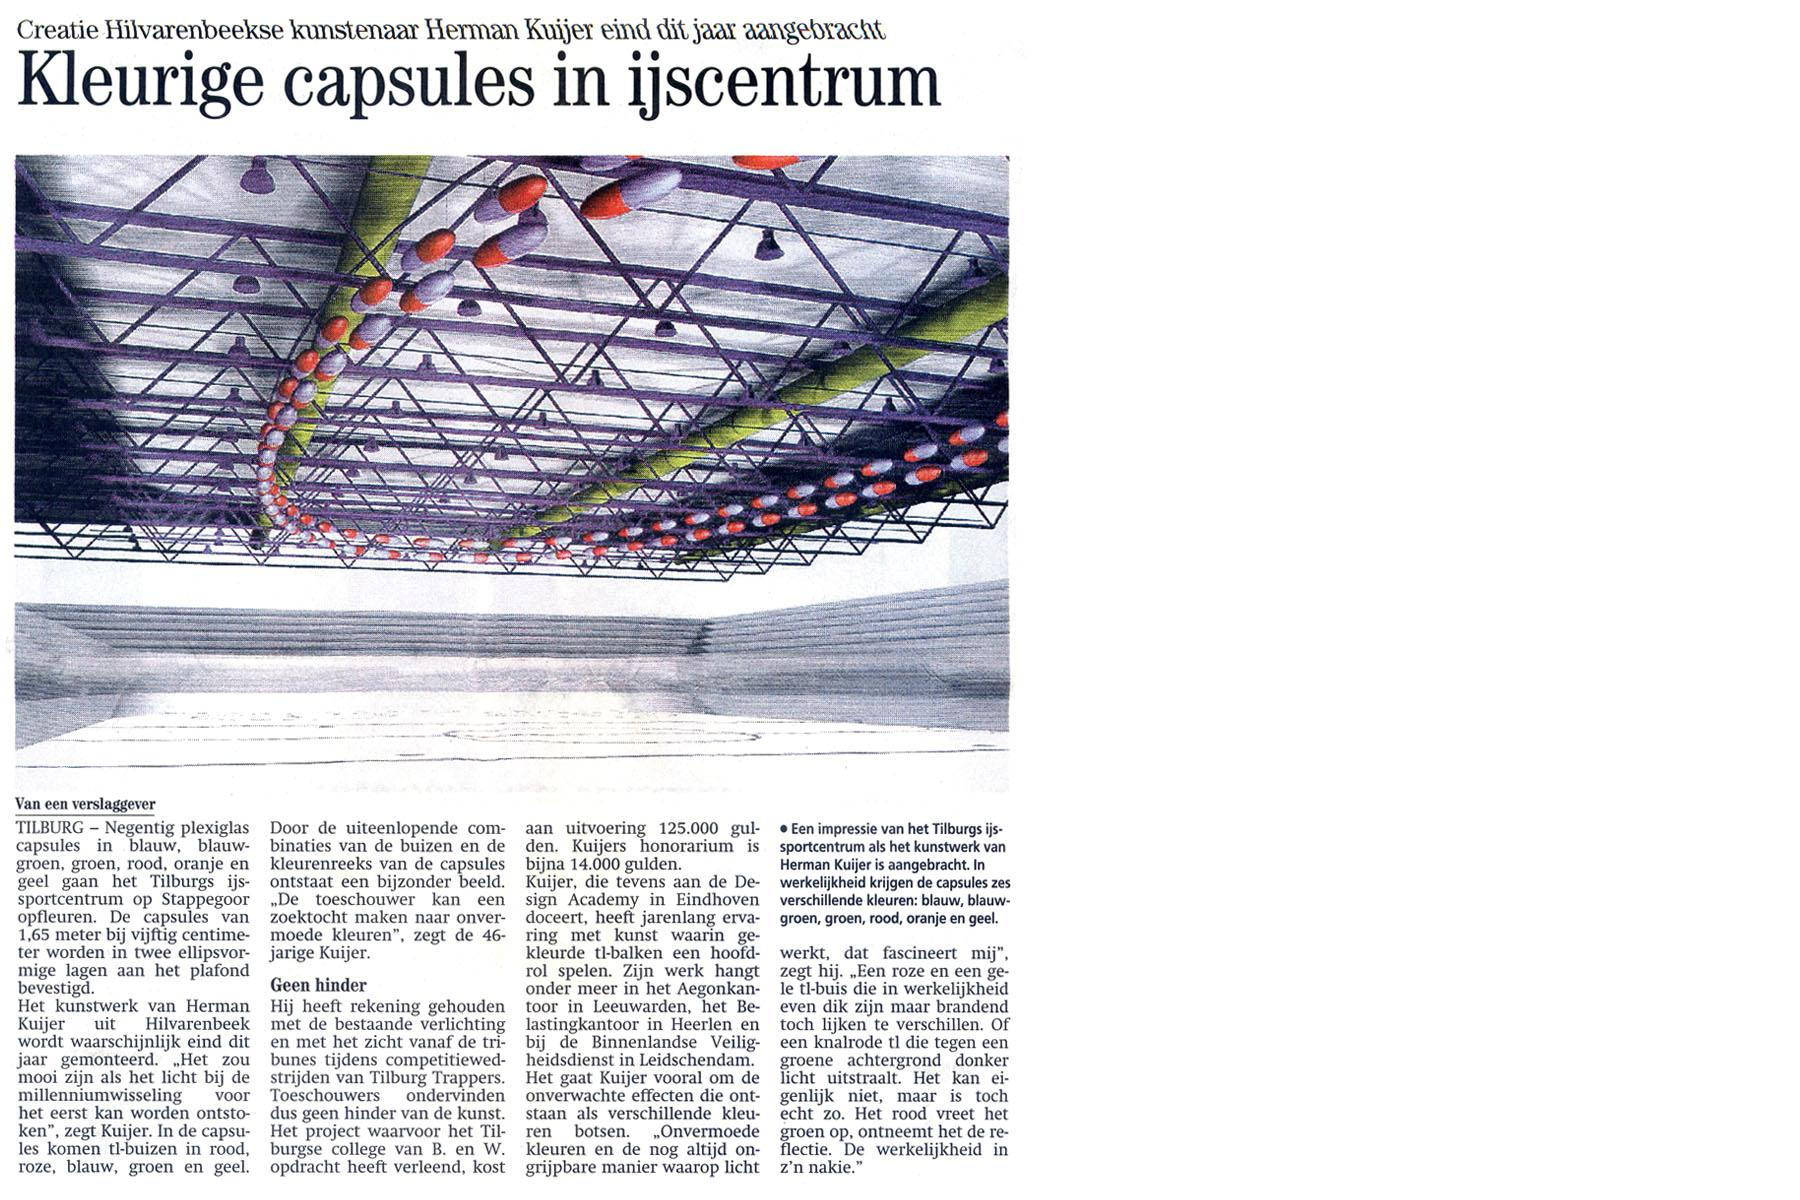 Brabants Dagblad - Kleurige capsules in ijscentrum